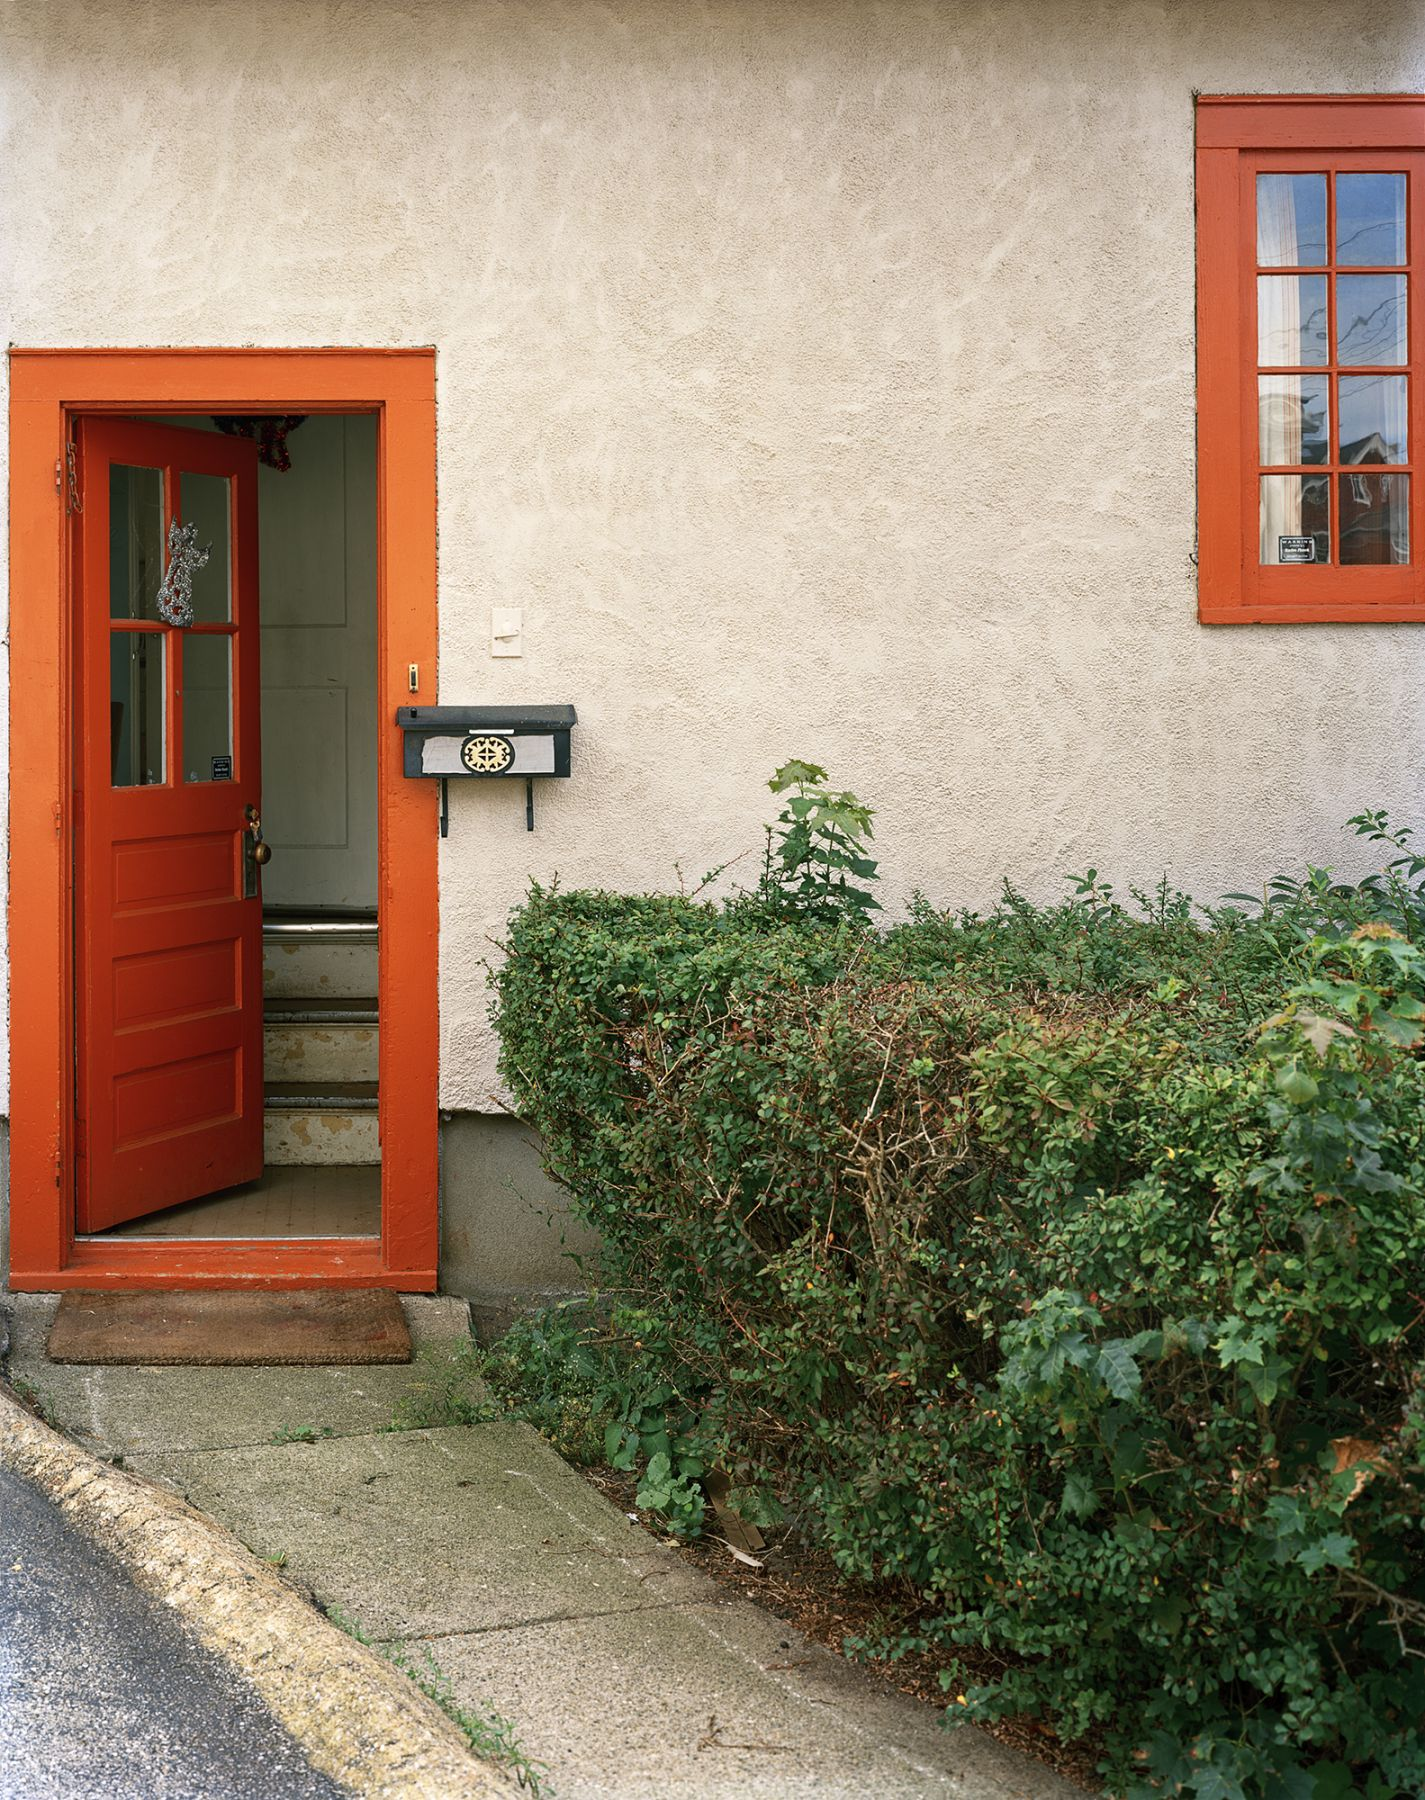 Orange and Green, Entrance   Archival Pigment Print  Eiditions of 5  25x20 inches  20x16 inches